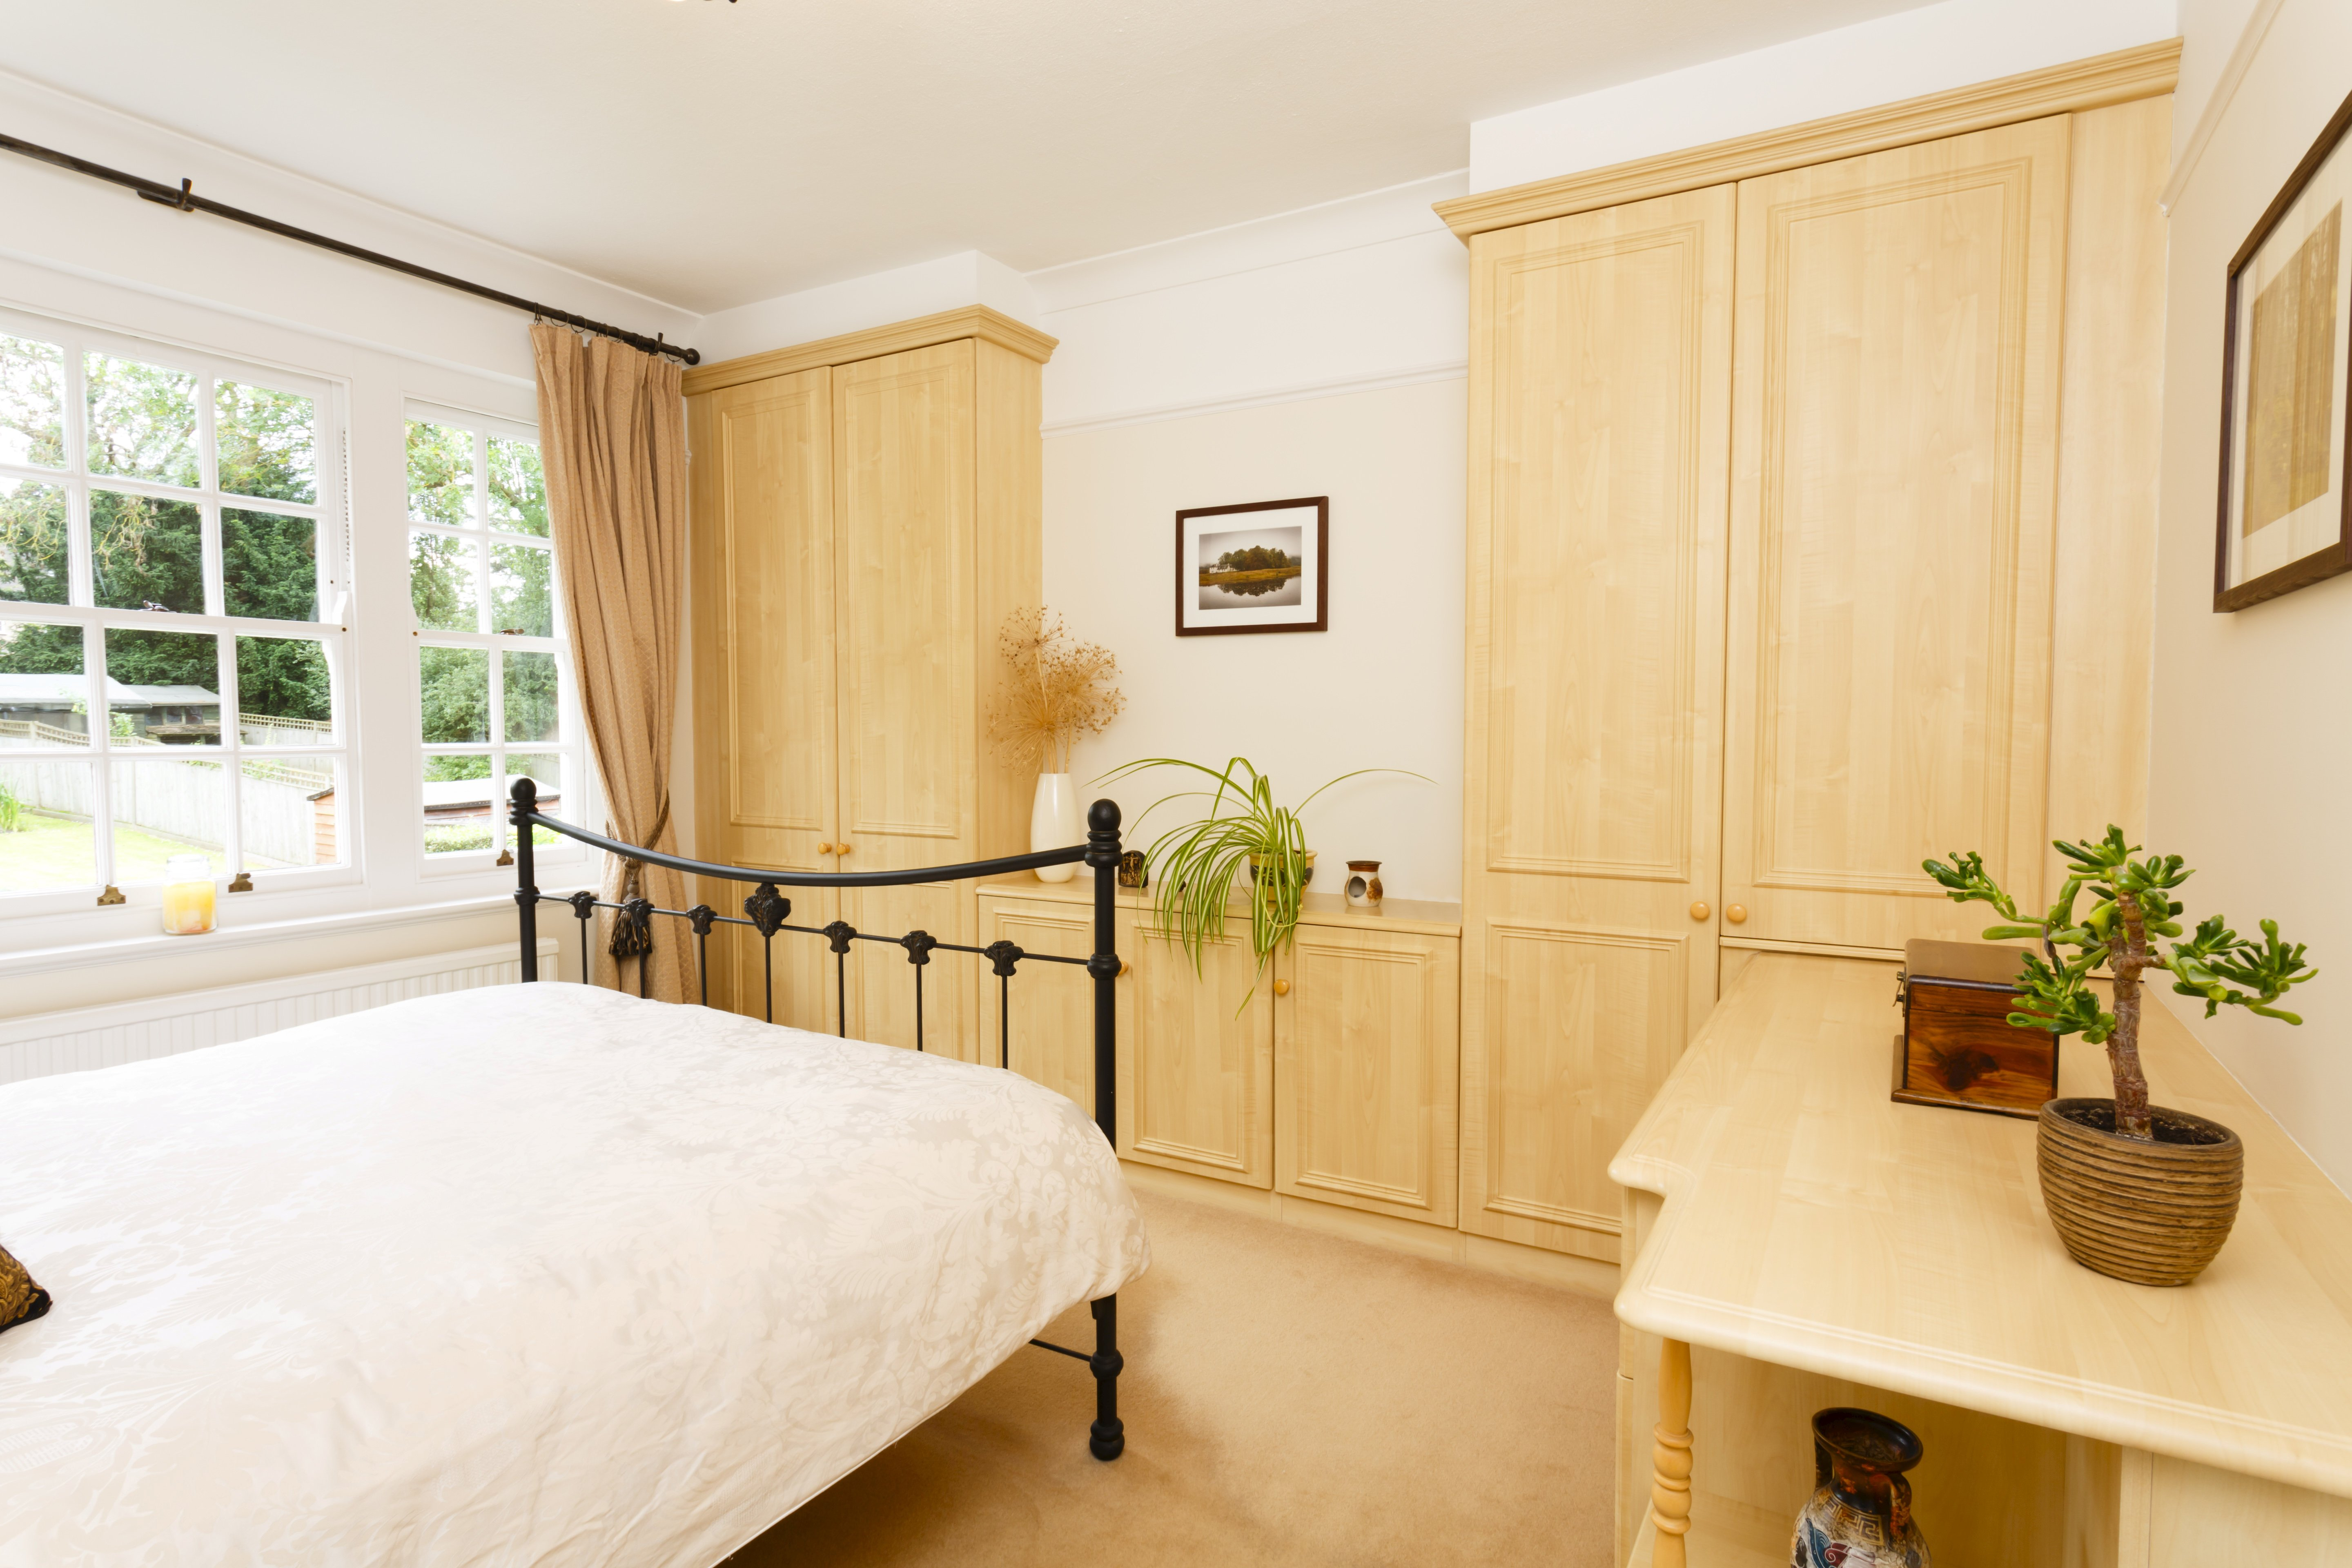 Who should pay up for the bedroom furniture payments in a divorce